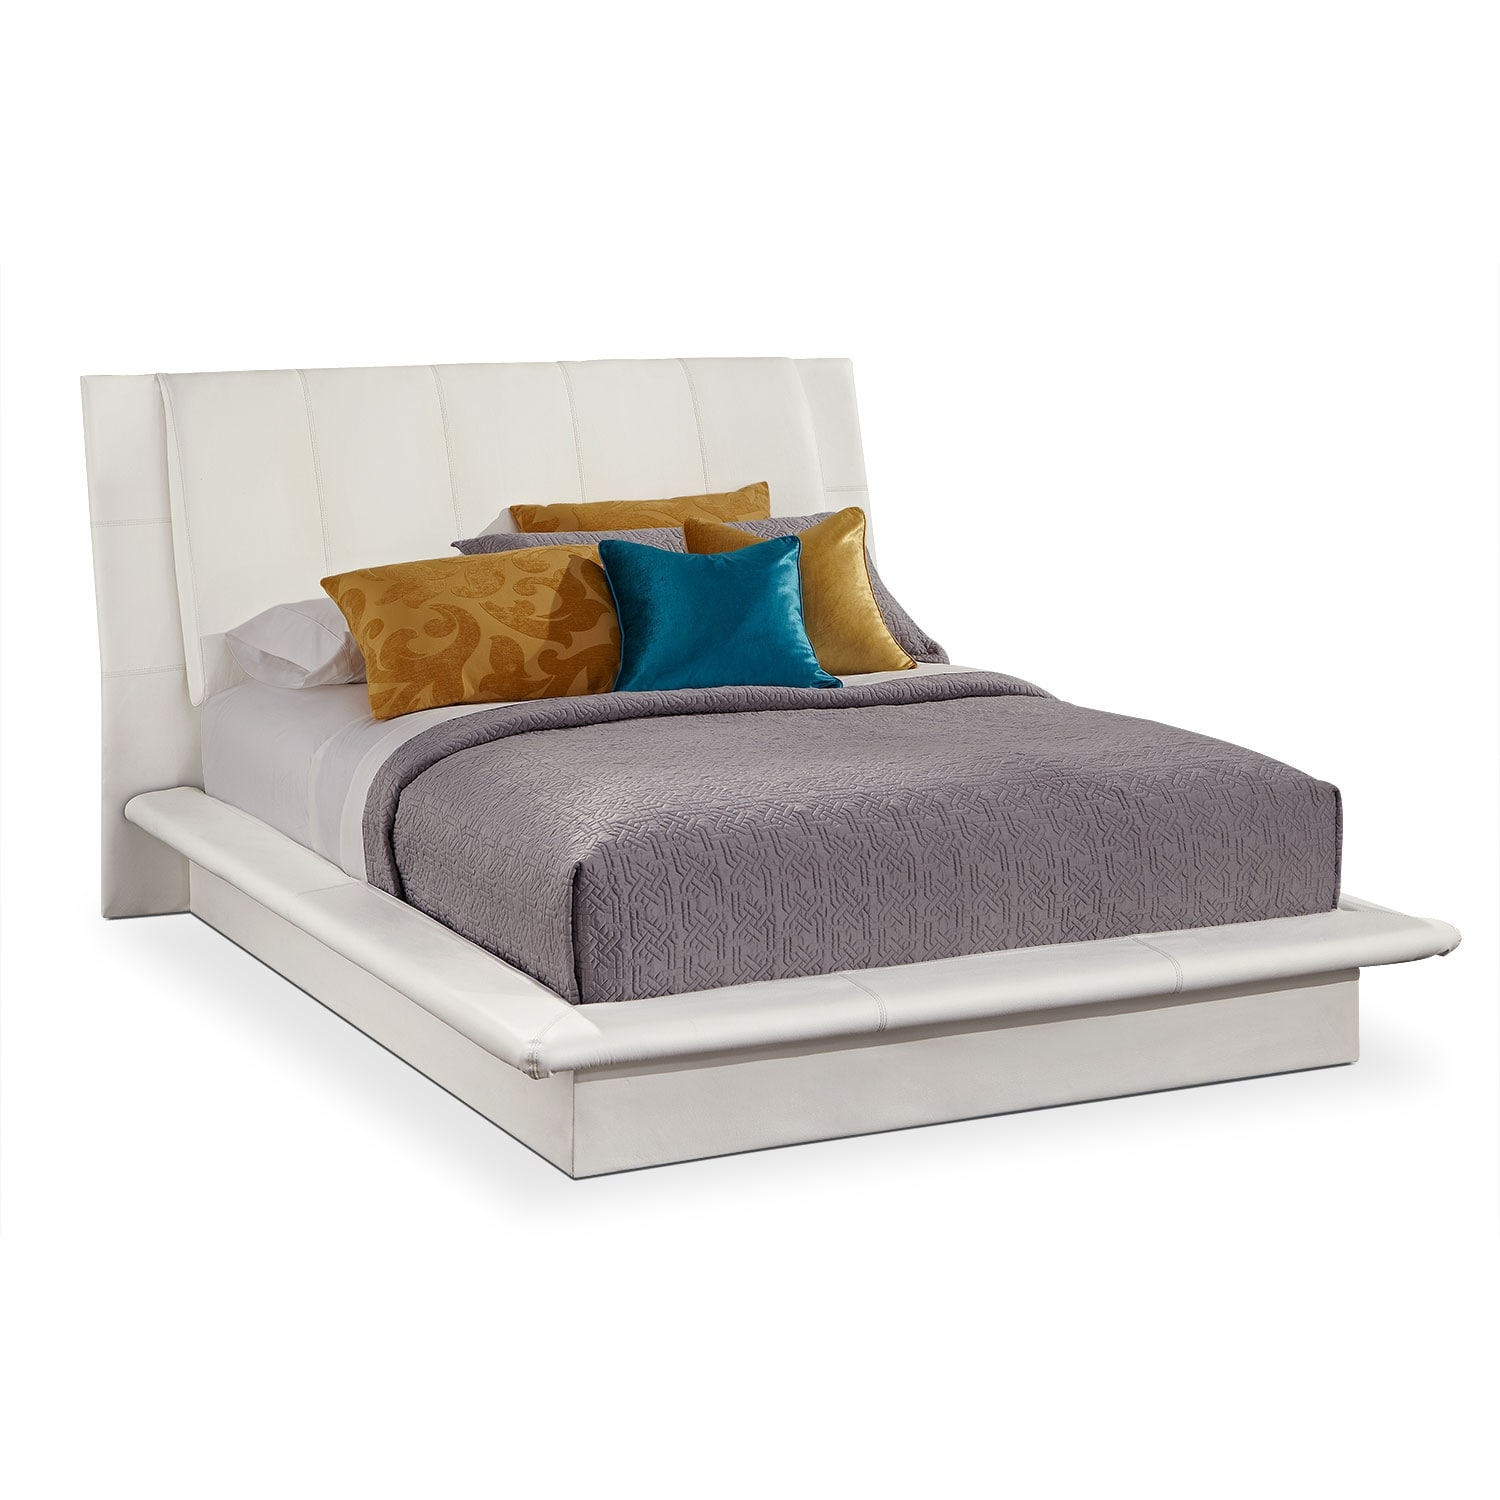 Dimora king upholstered bed white american signature for Signature bedroom furniture